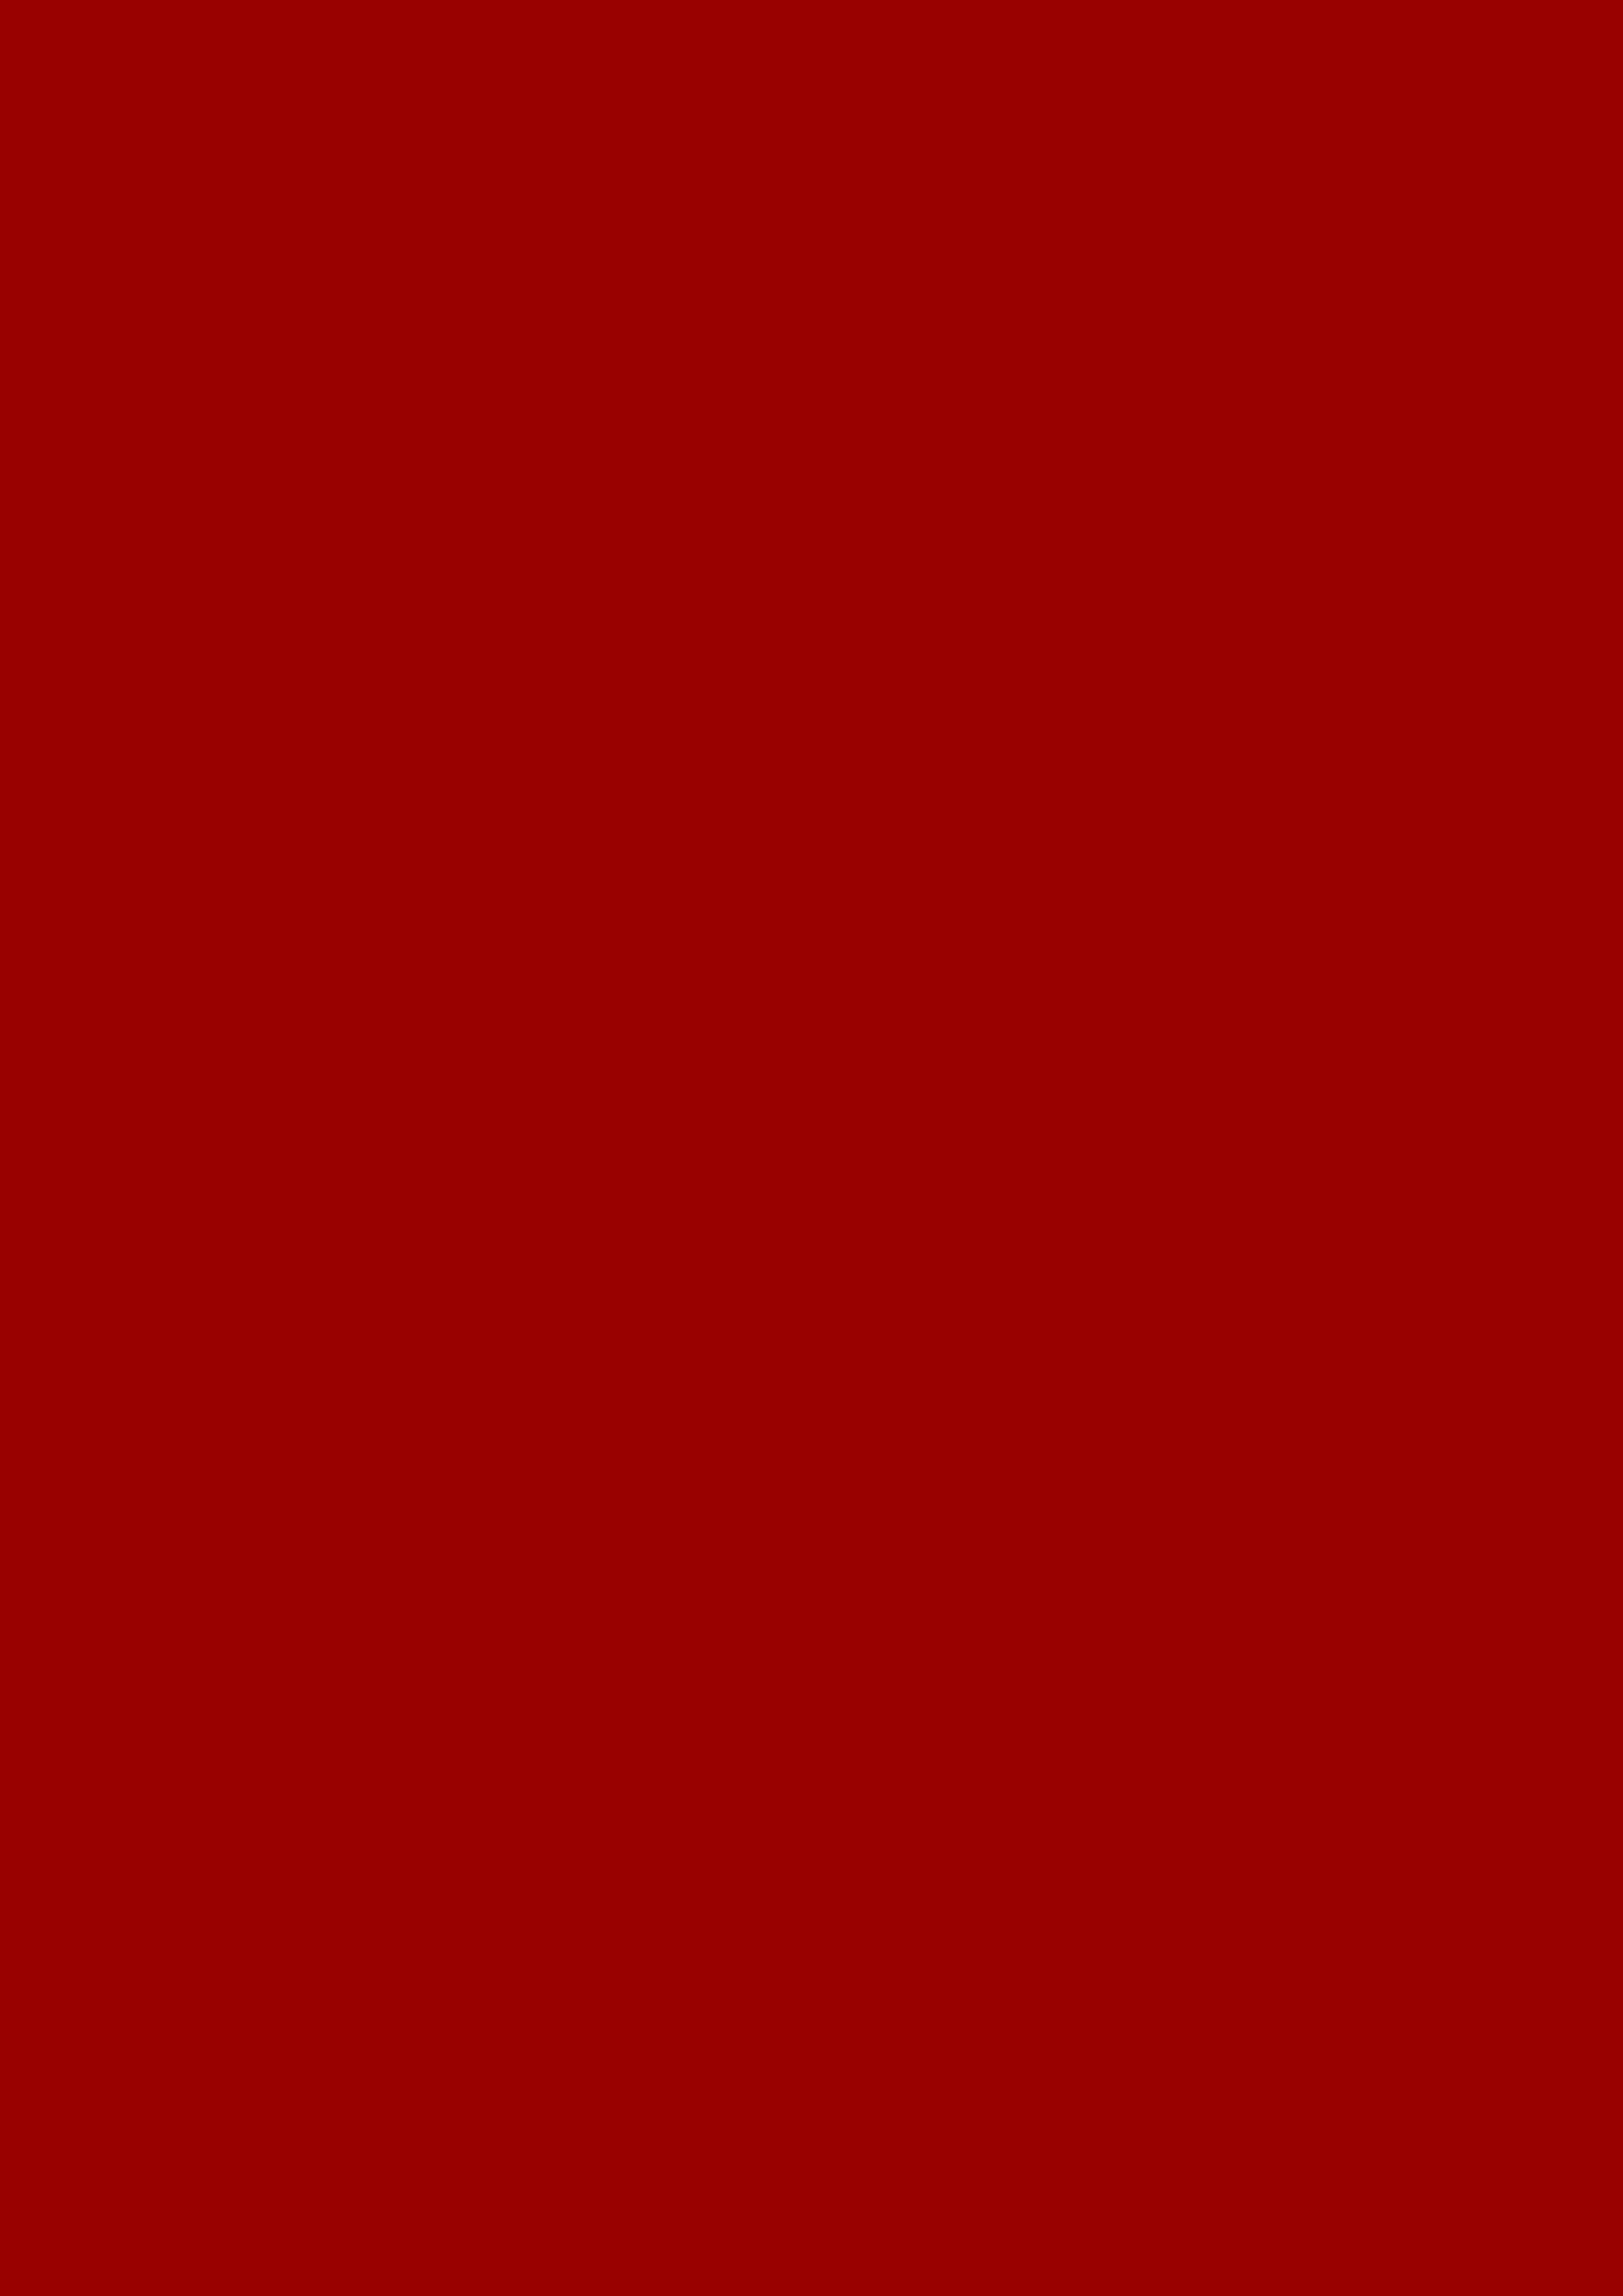 2480x3508 OU Crimson Red Solid Color Background